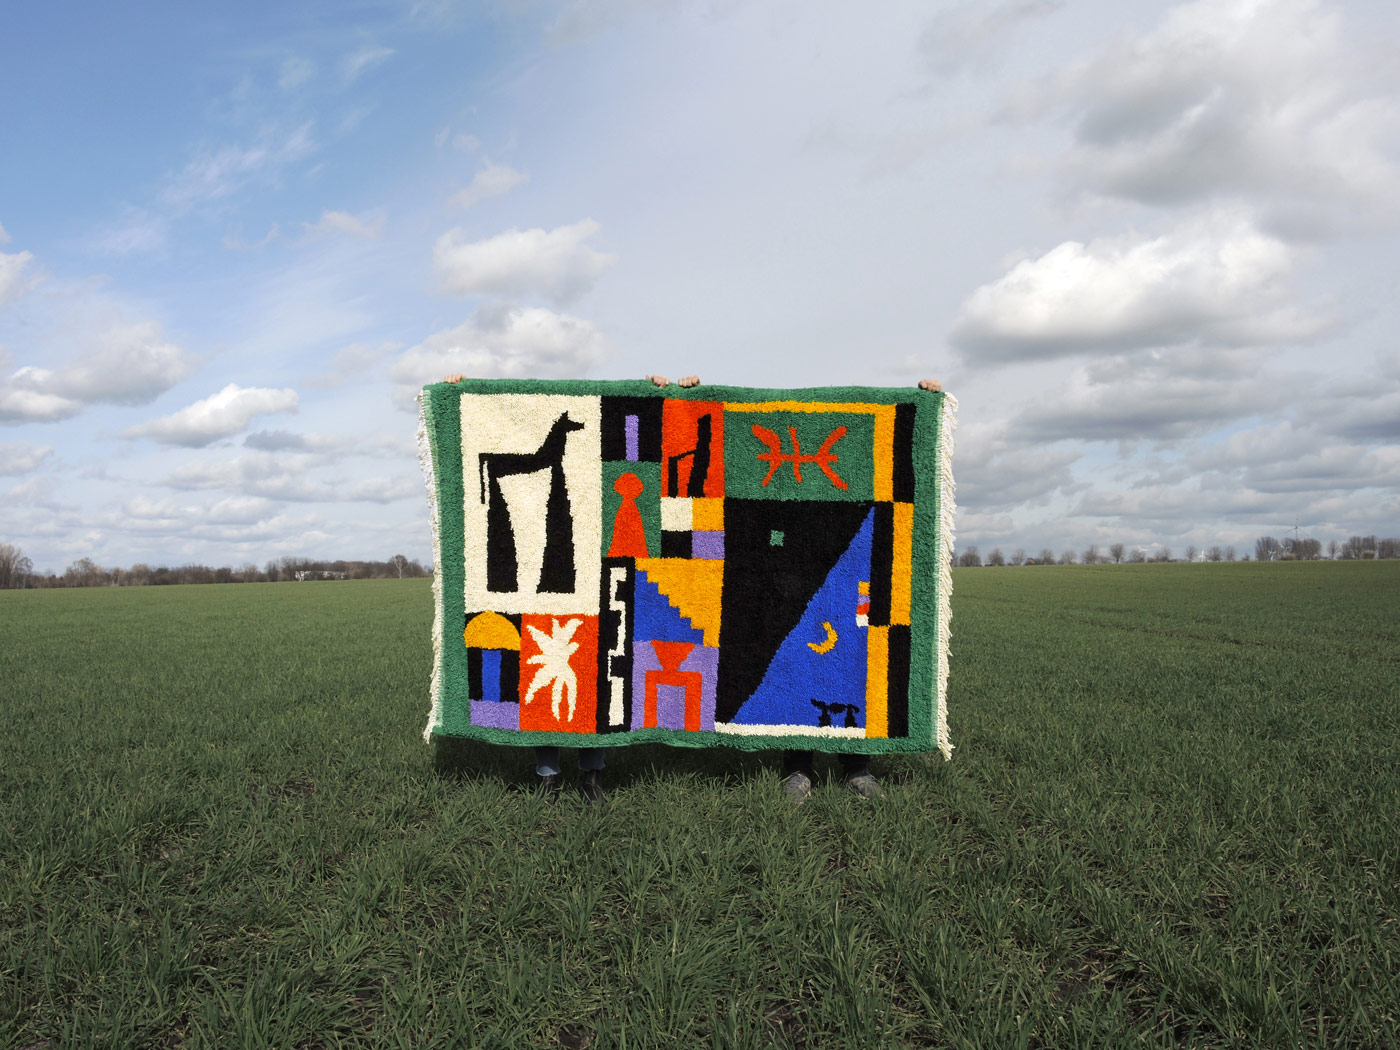 08 collide24 ZEBU - Explore the reduced, abstract and bold visual language by Zebu